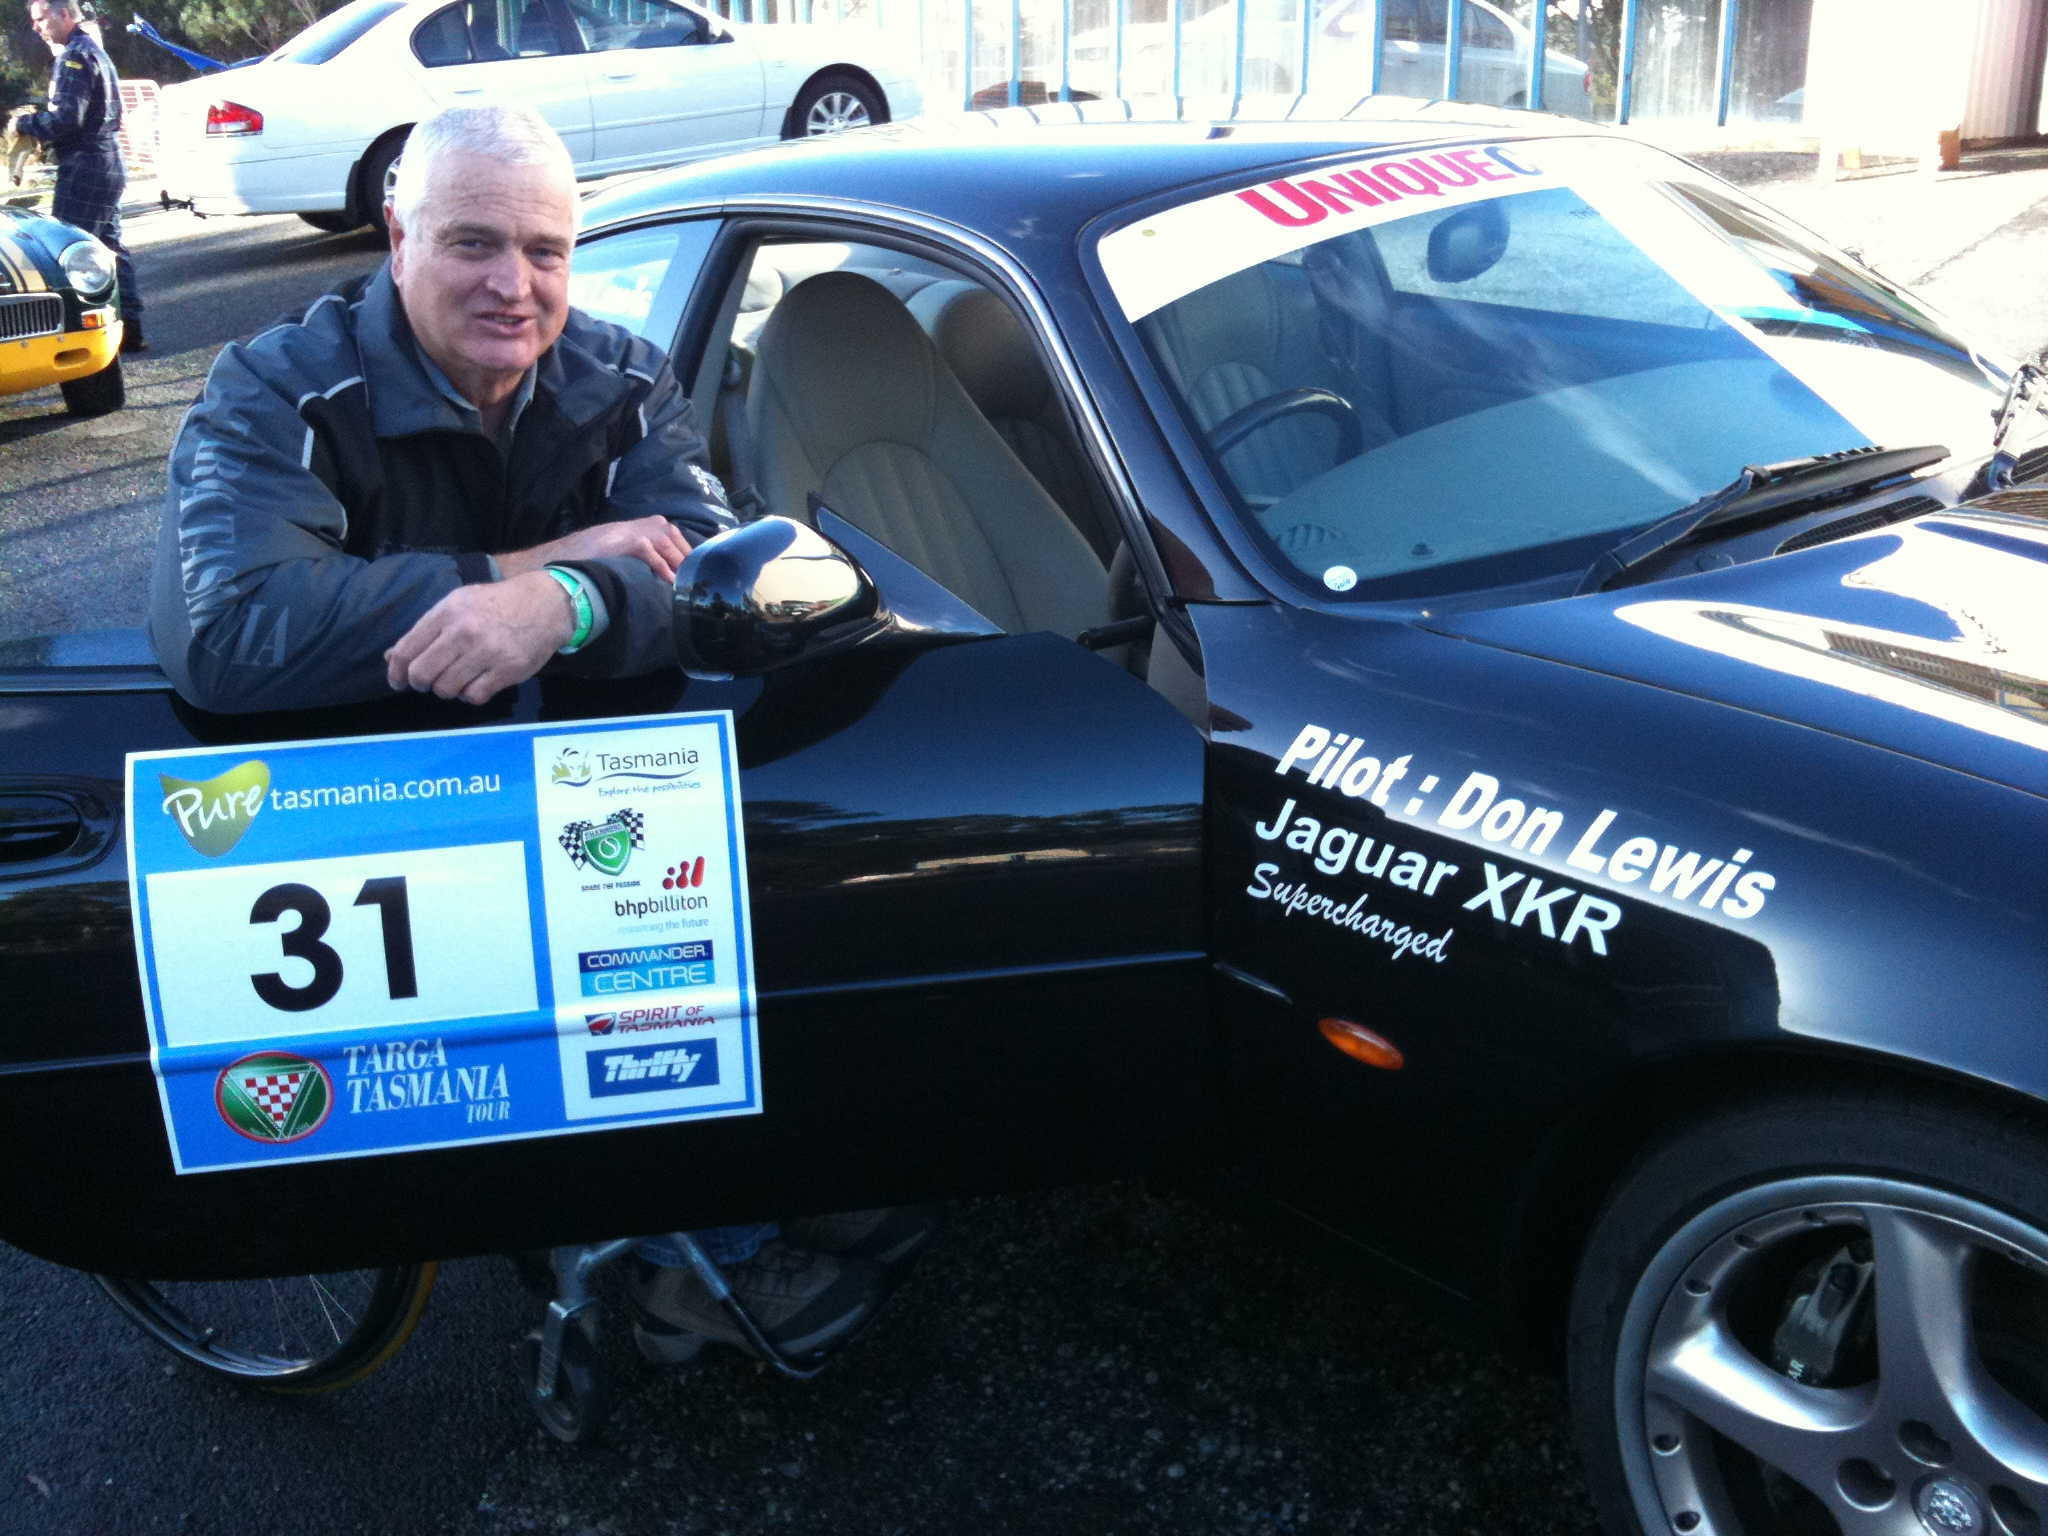 Proudly displaying the Targa Tasmania signage